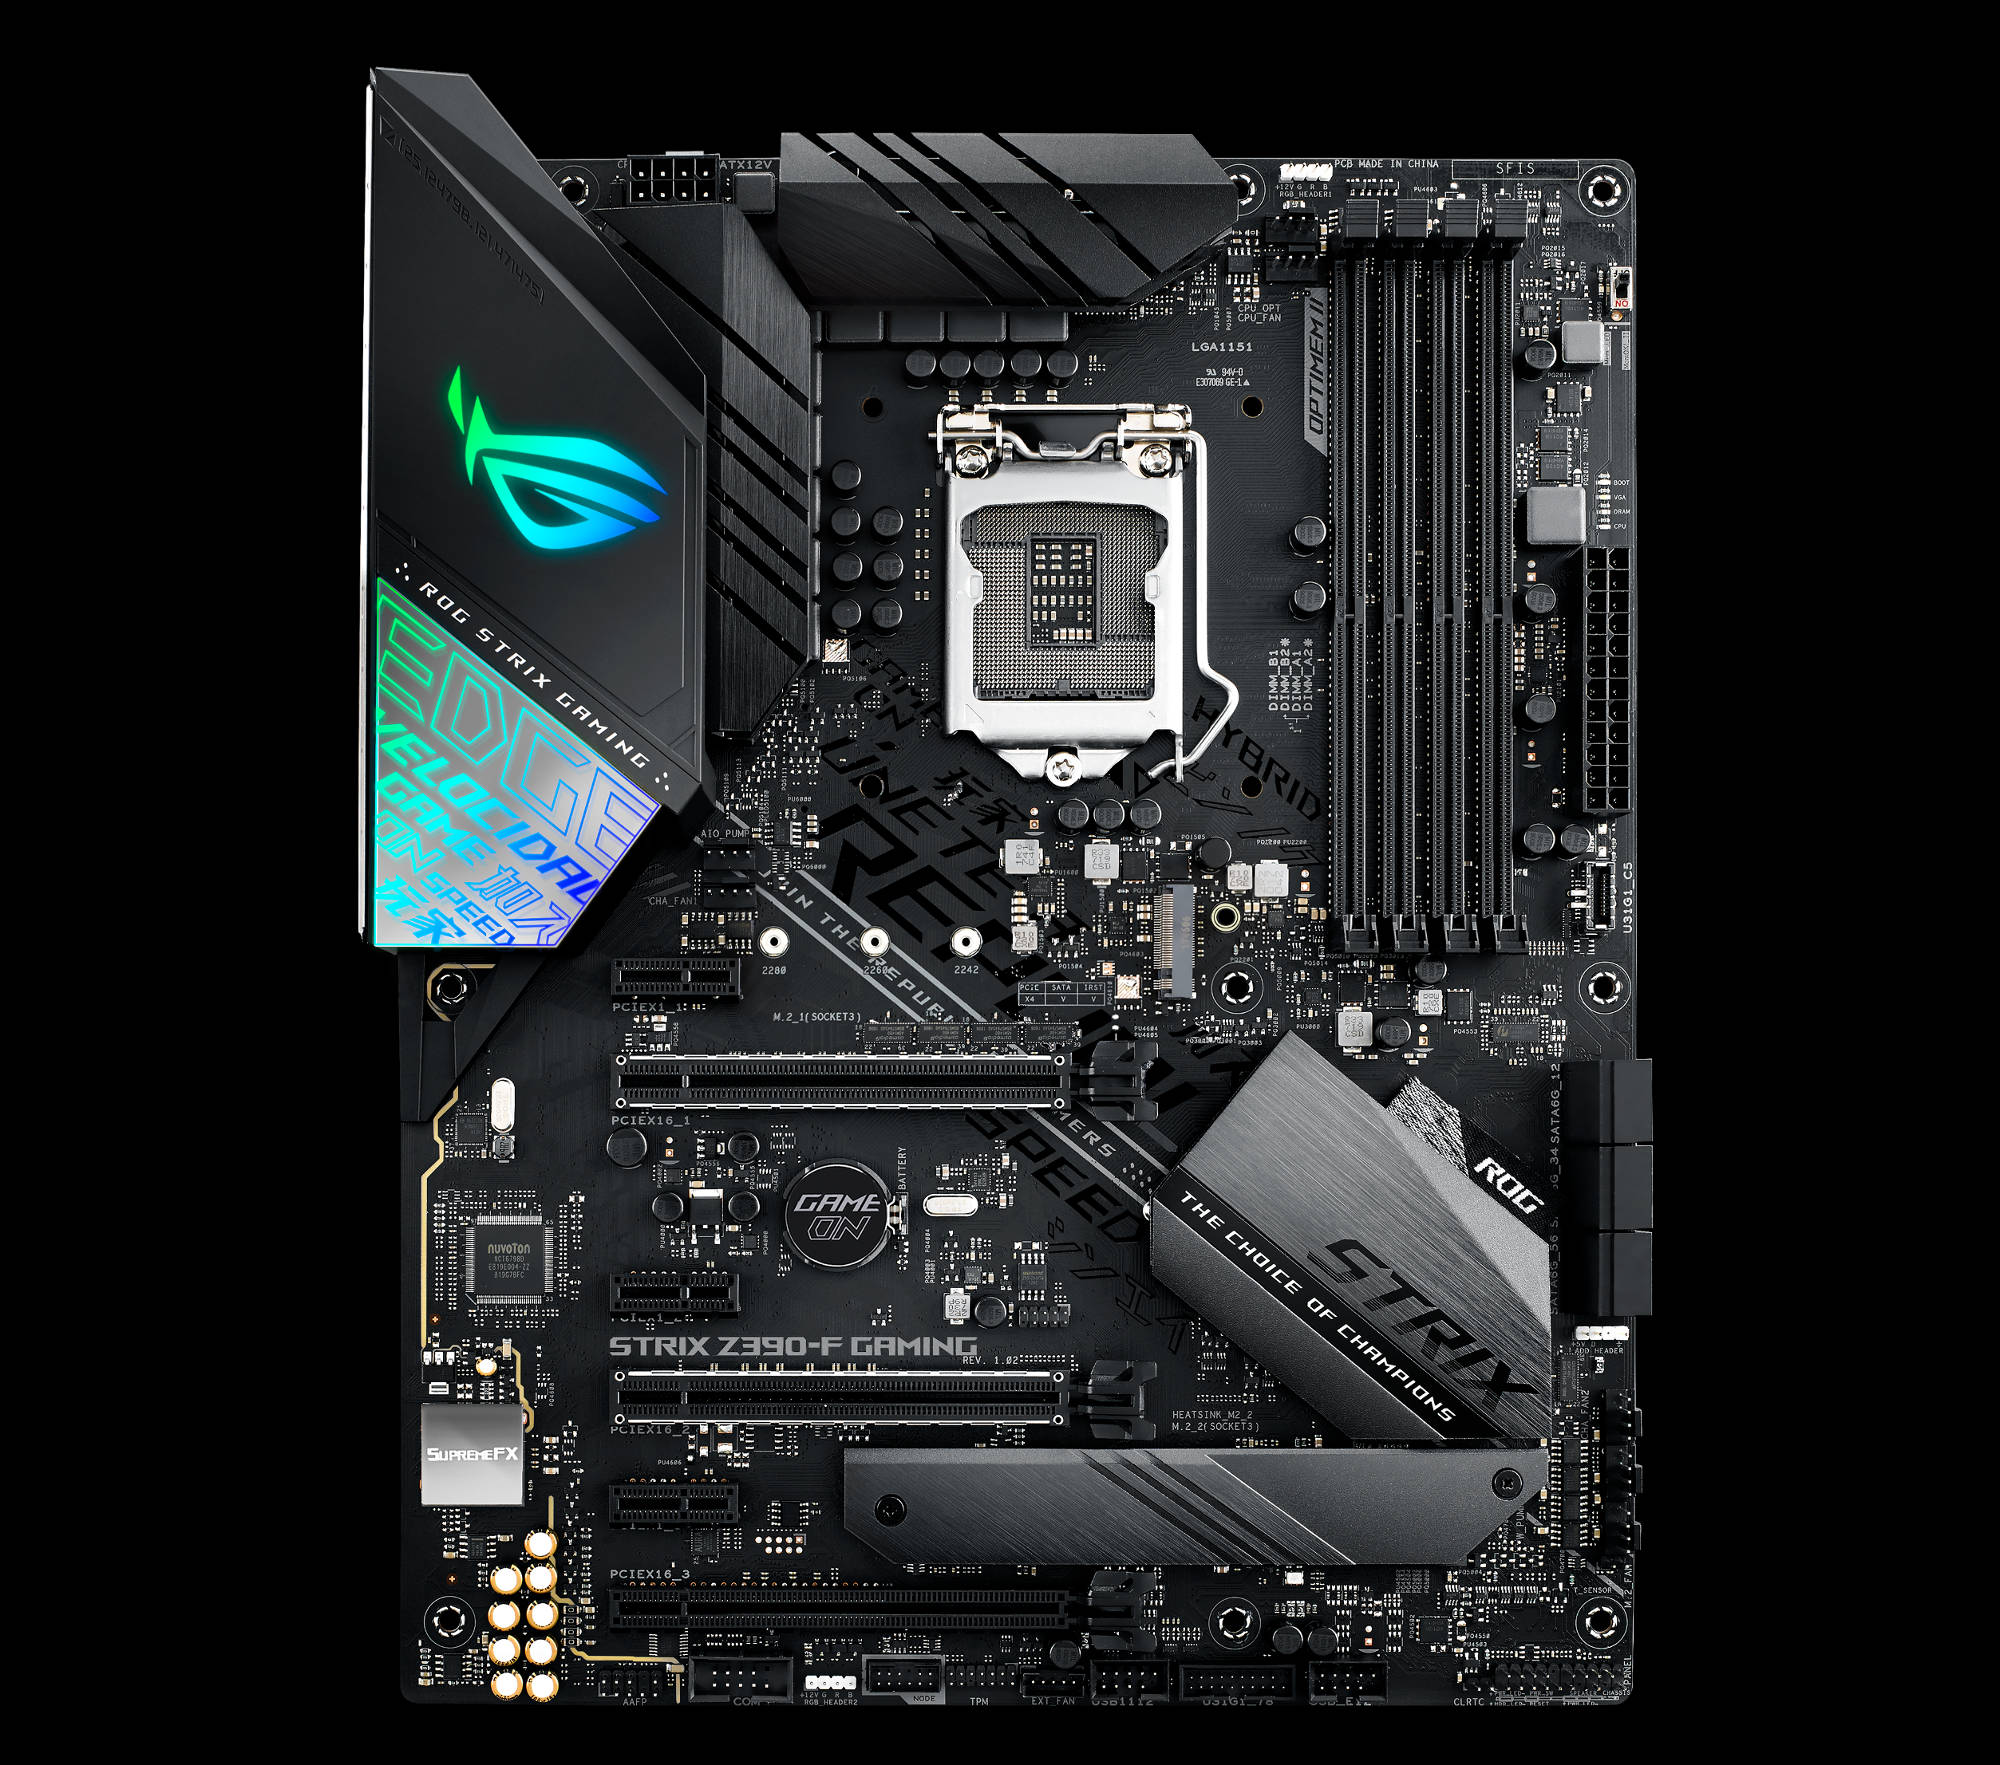 Introducing Rog Maximus And Strix Z390 Gaming Motherboards For 8 Real Old Computer Circuit Board Pcb Motherboard Key Chain Re Distinctive Cyber Text Patterns Slash Across Not Only The But Also A Vinyl Surface On I O Shroud That Reflects Ambient Light